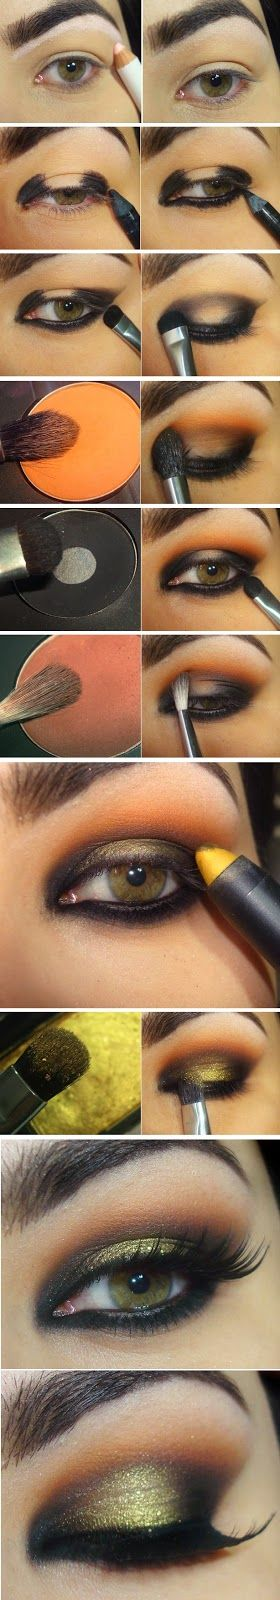 Wonderful Golden , Yellow Shade with Orange and Black Makeup Tutorials / Best LoLus Makeup Fashion: